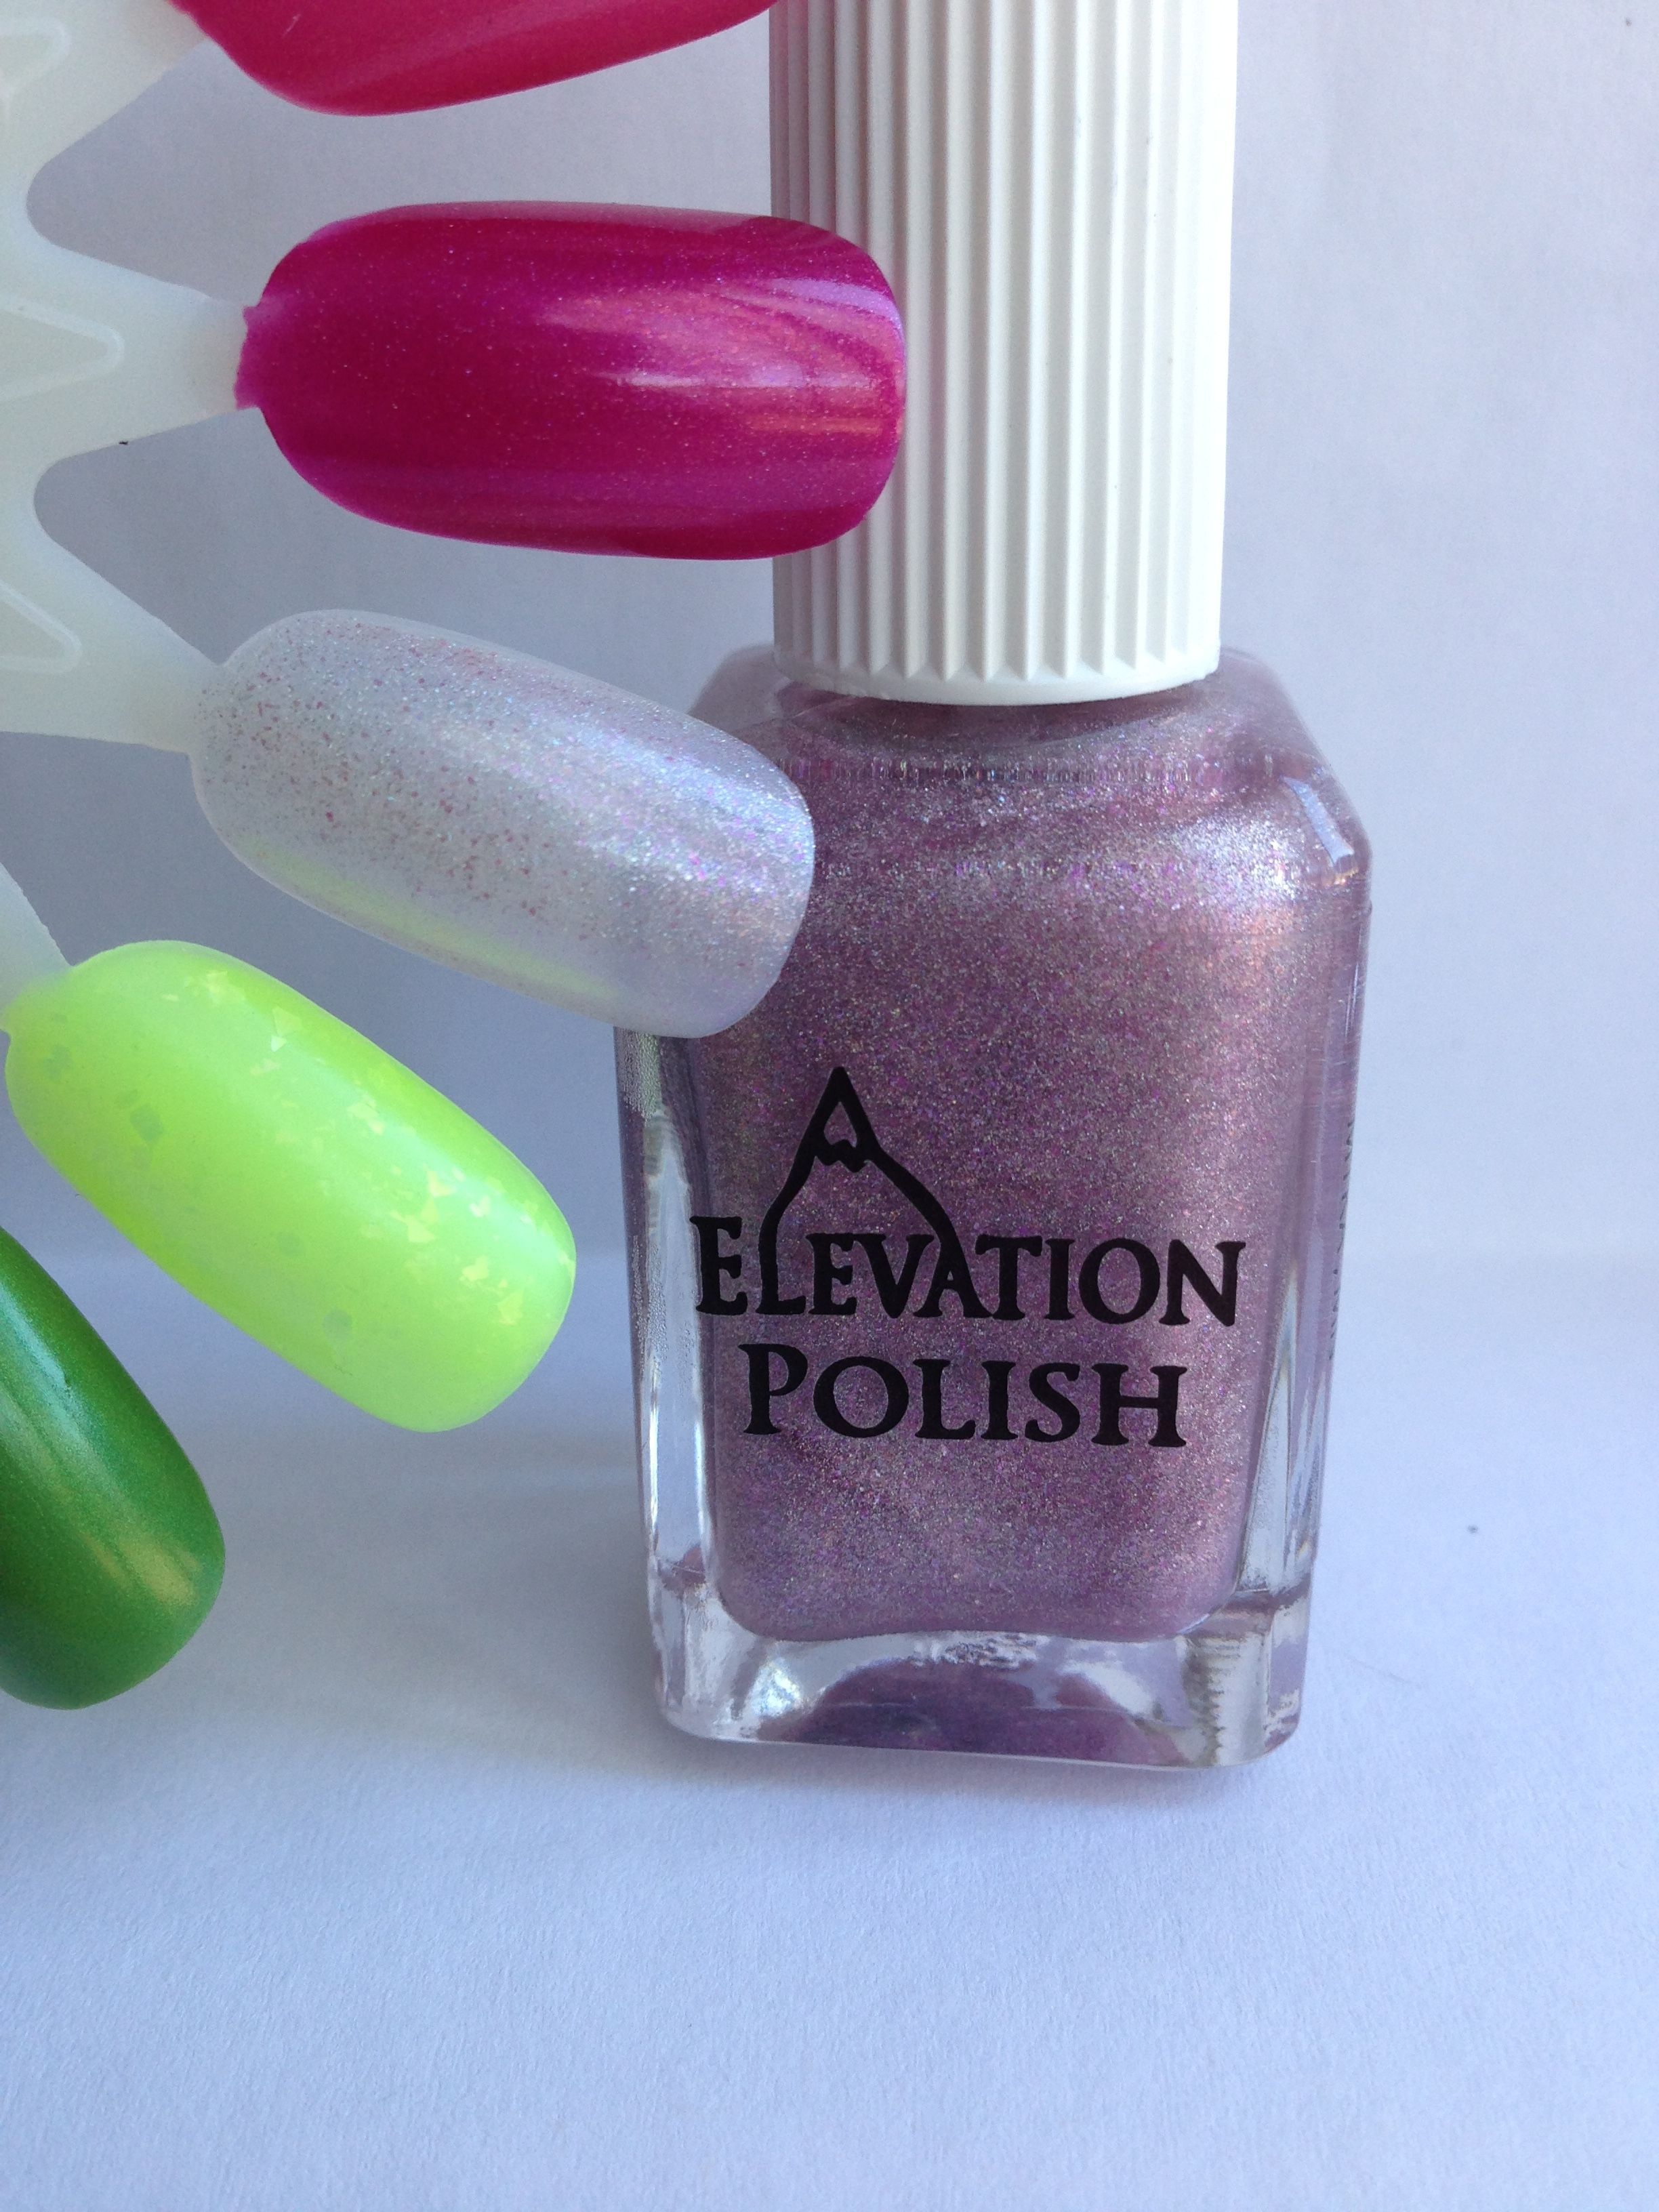 Name: Peruvian Twinkle  Description: Clear base with a scattering of pink flake shimmer, and holographic pigment